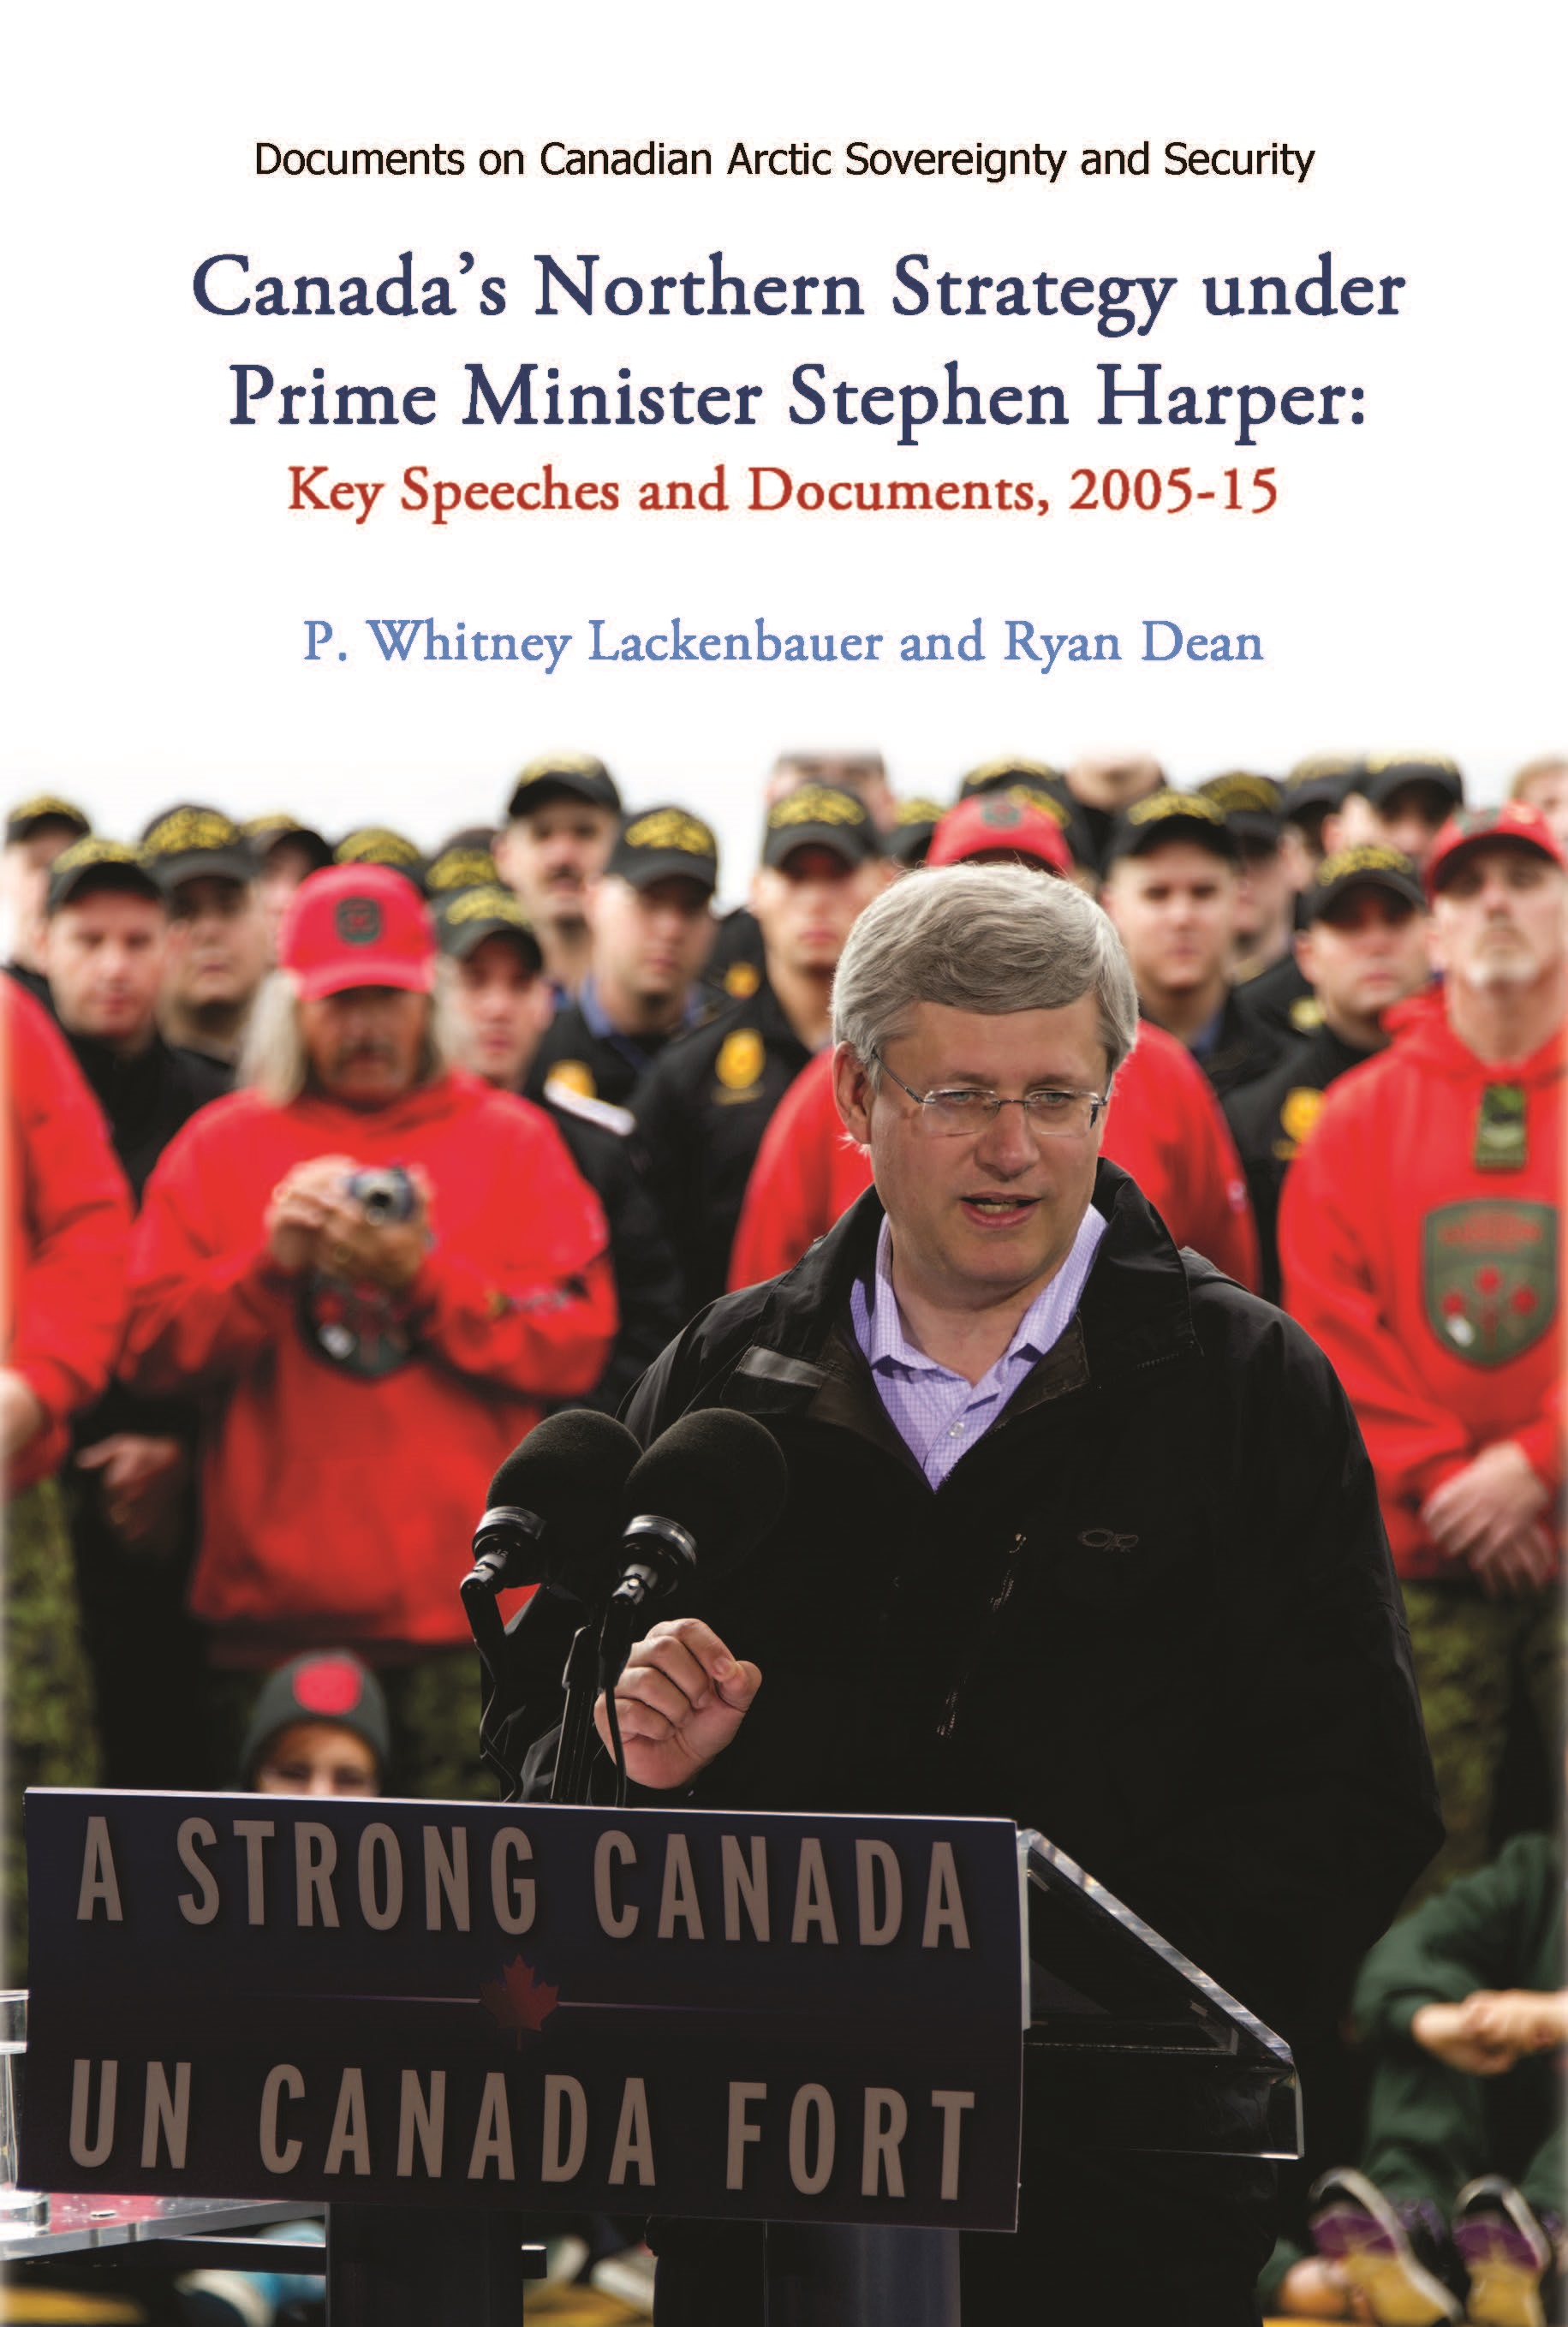 Canada's northern strategy under the Harper government : key speeches and documents on sovereignty, security, and governance, 2005-15